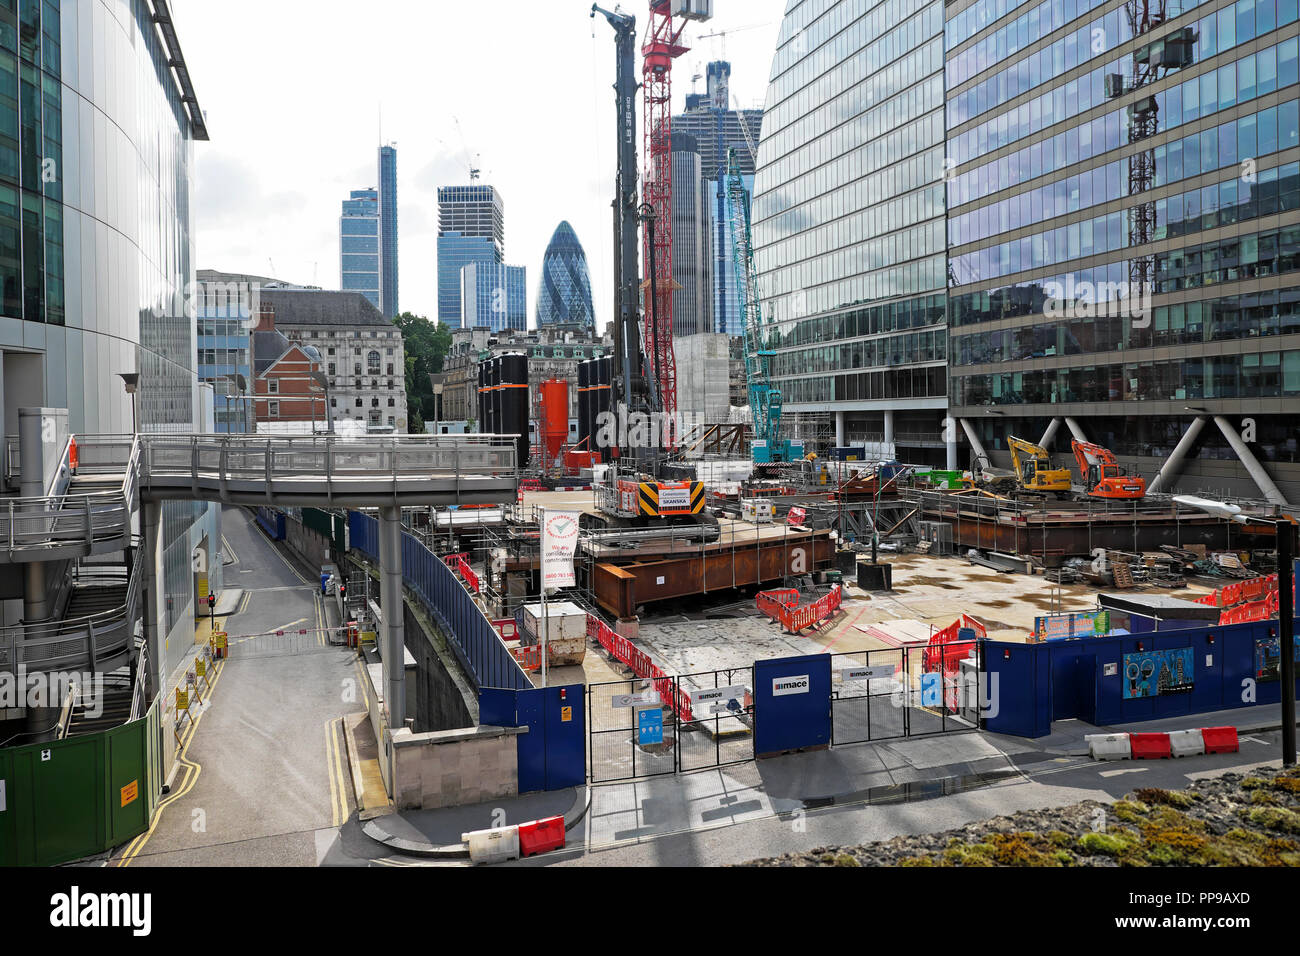 Moorgate construction site in the City of London, England, UK  KATHY DEWITT - Stock Image